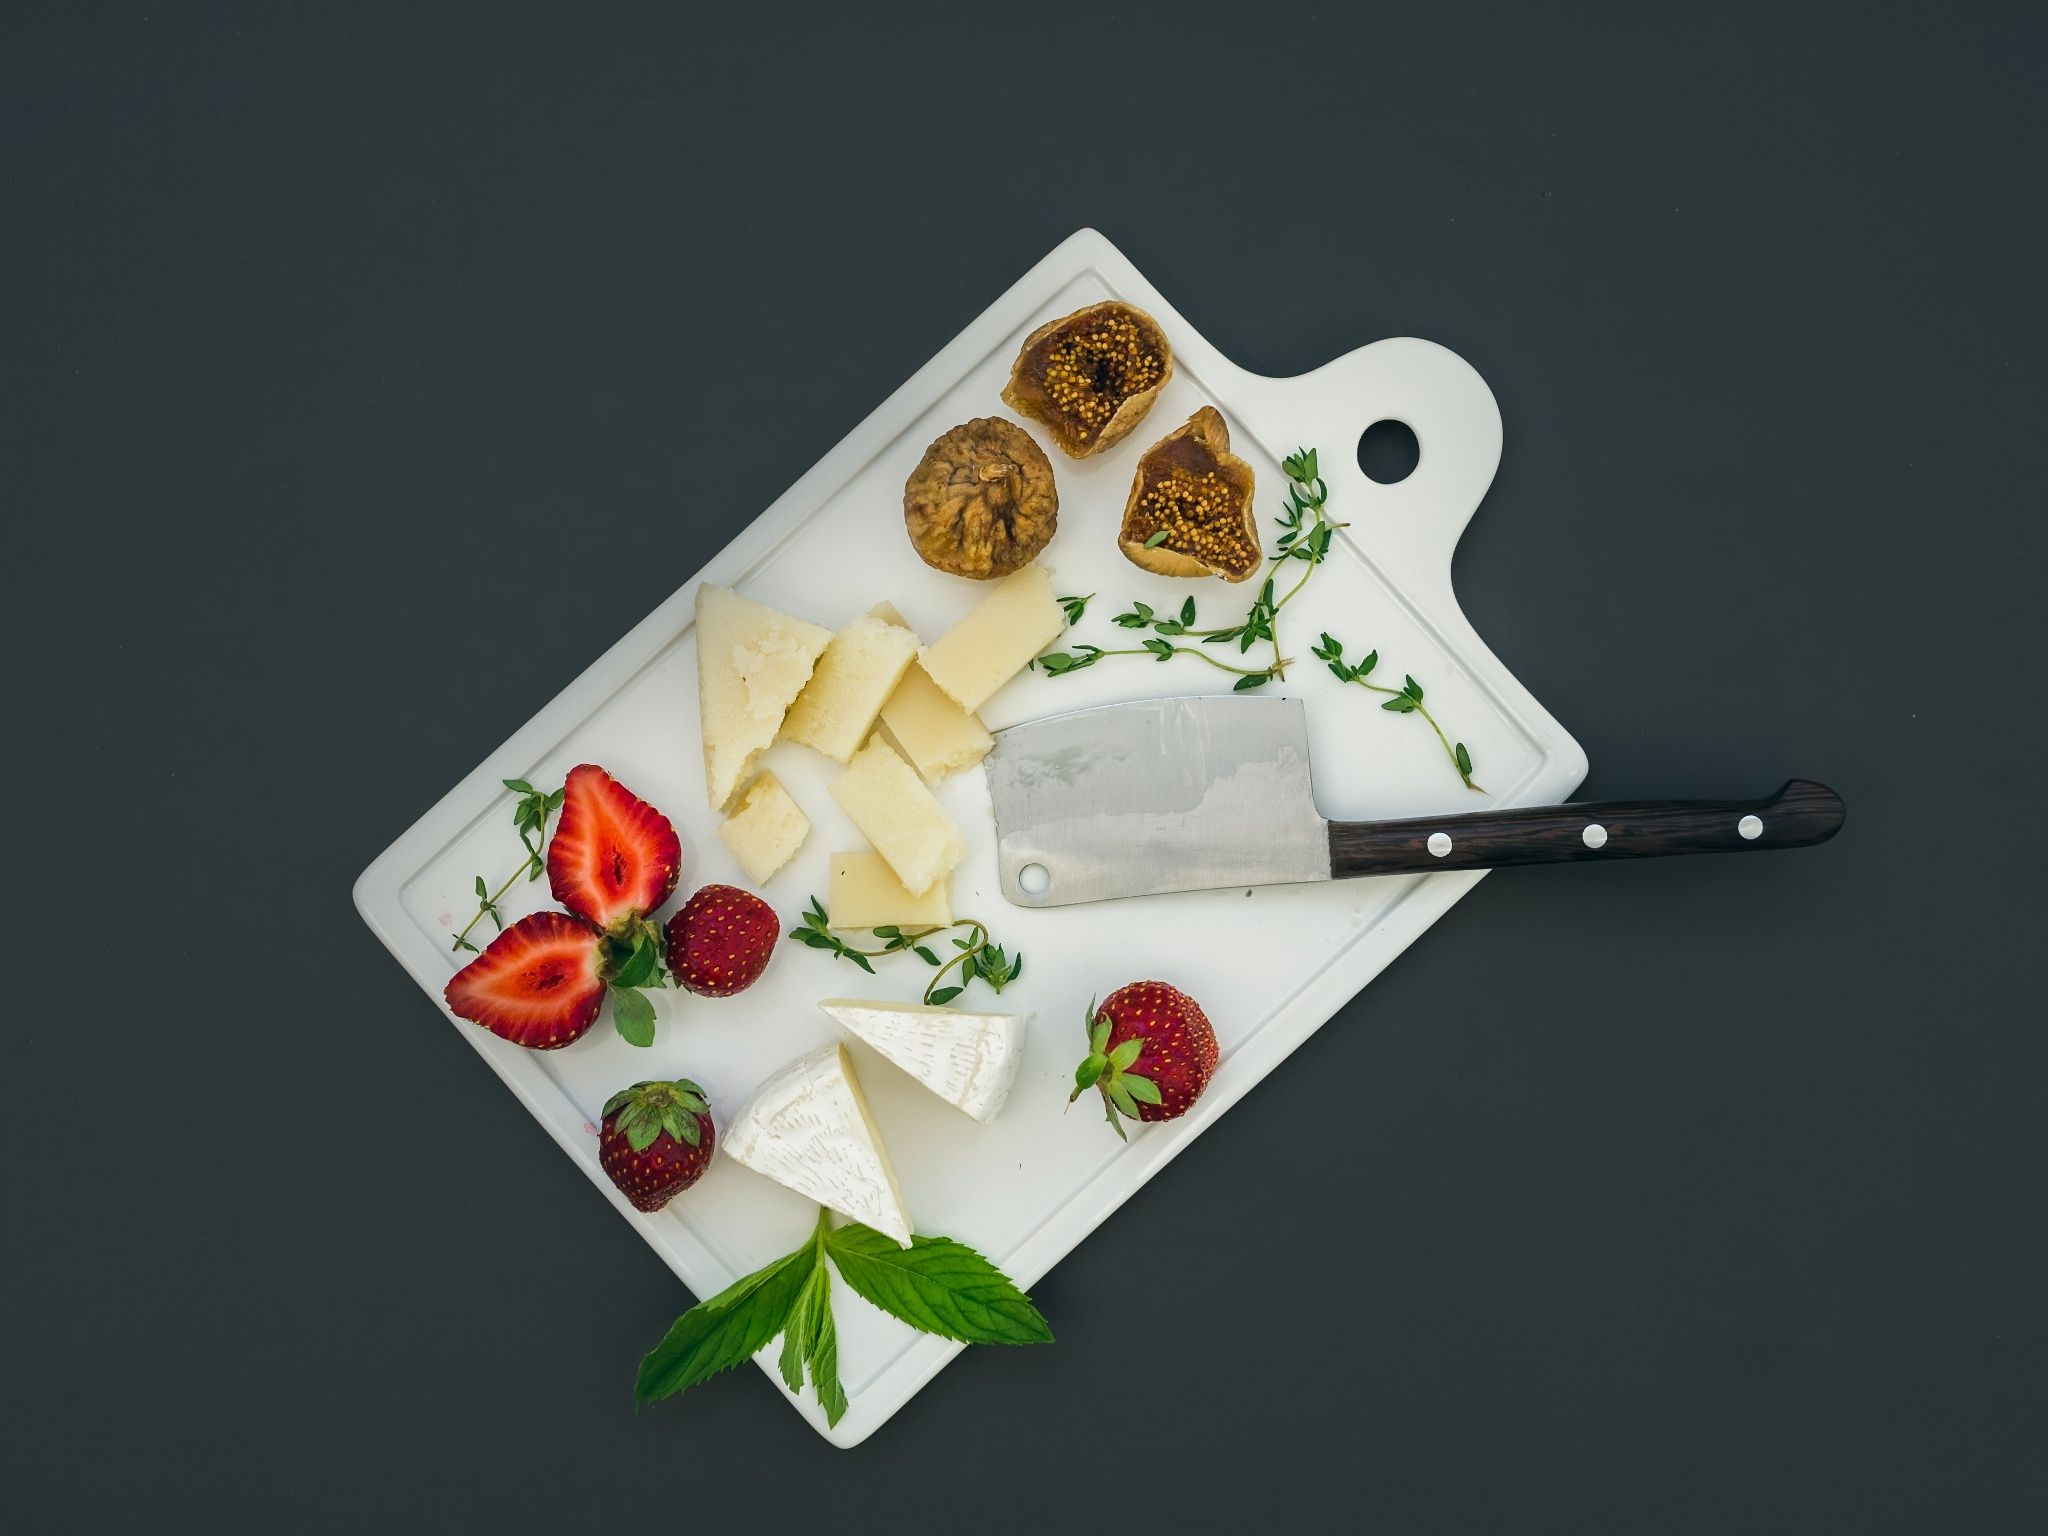 Photograph Cheese and fruit set on a dark surface by Anna Ivanova on 500px